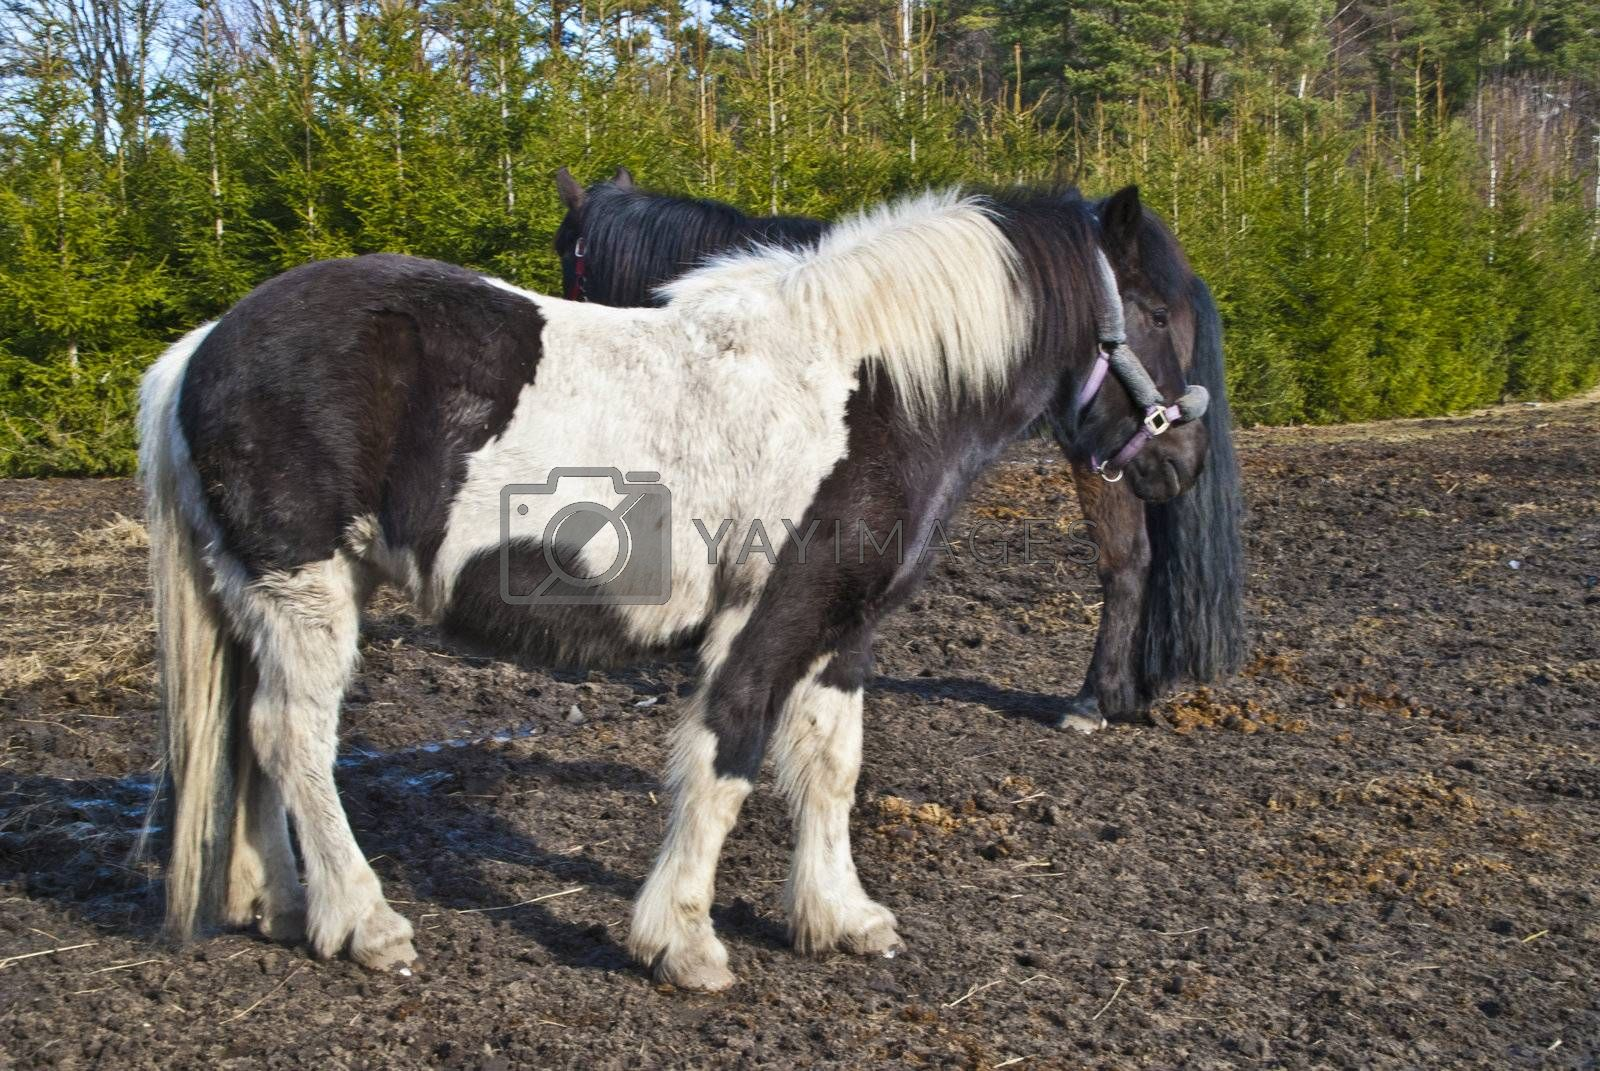 The horses on the picture I met at a riding school in Halden located in county of Østfold, Norway.